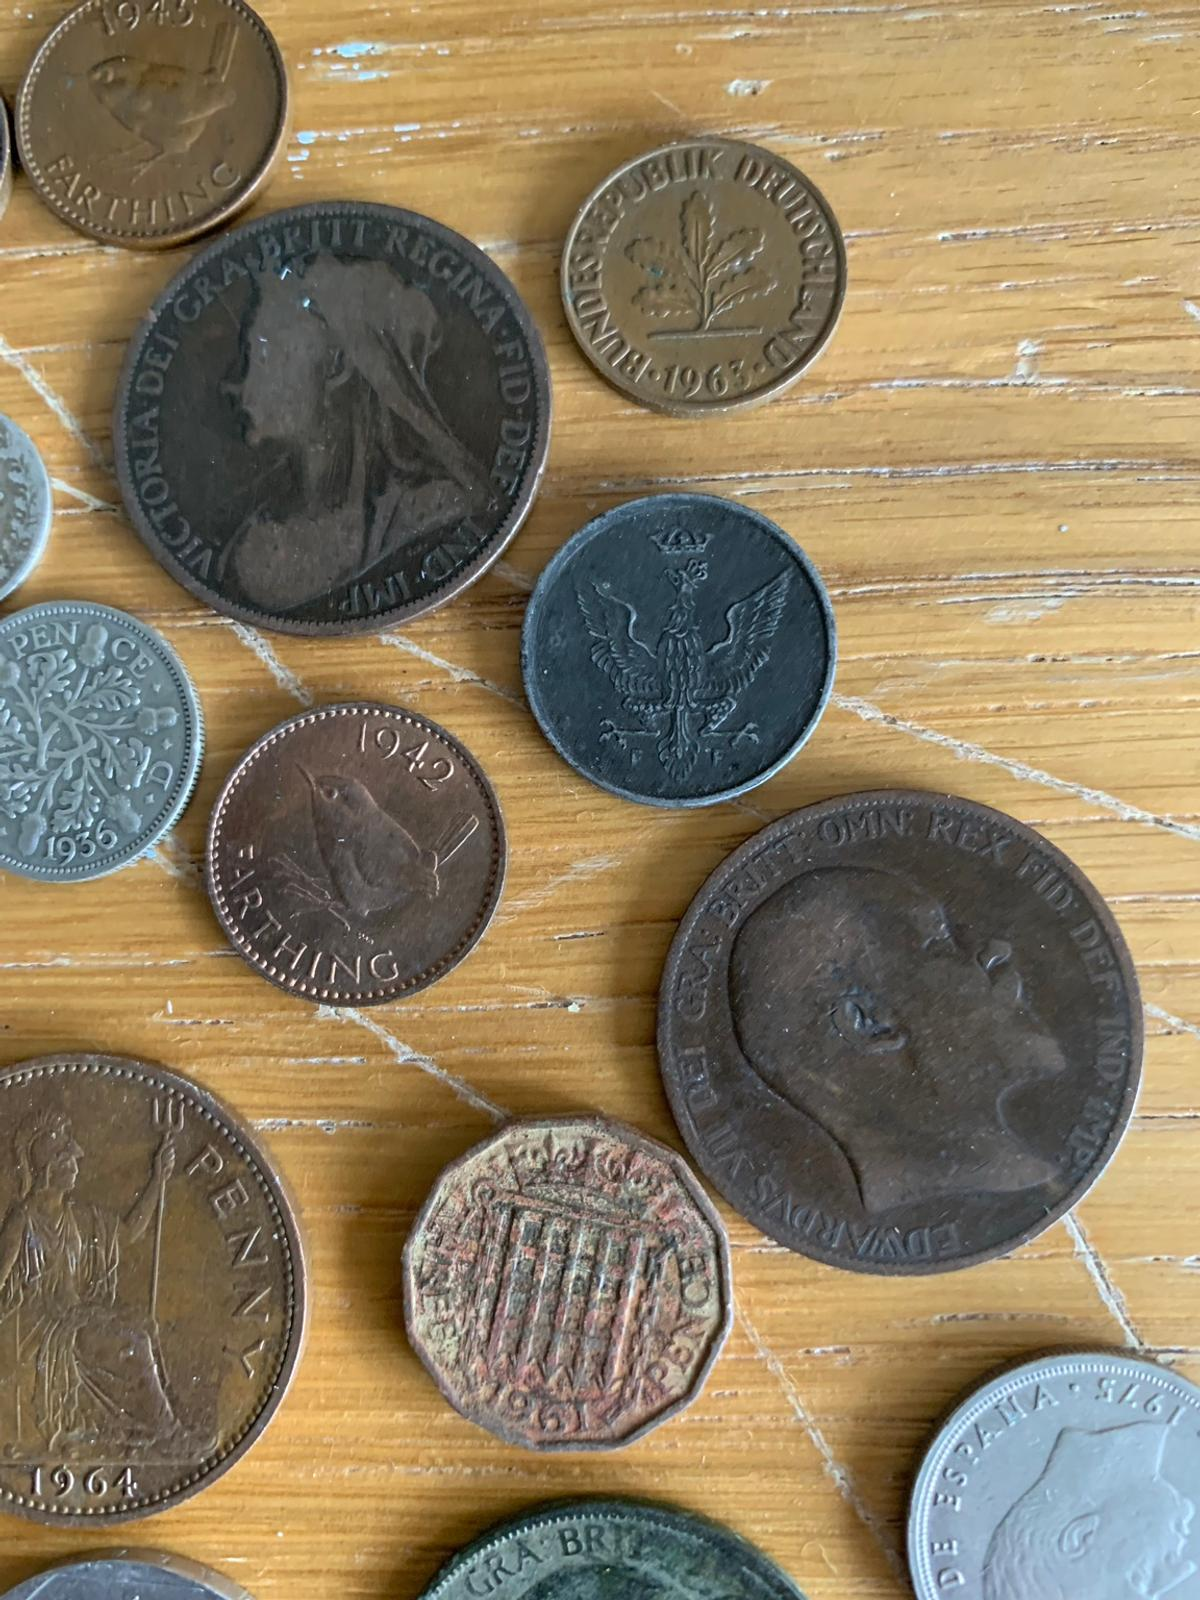 British Silver Florin 1936 Coloured Penny 3d in Doncaster